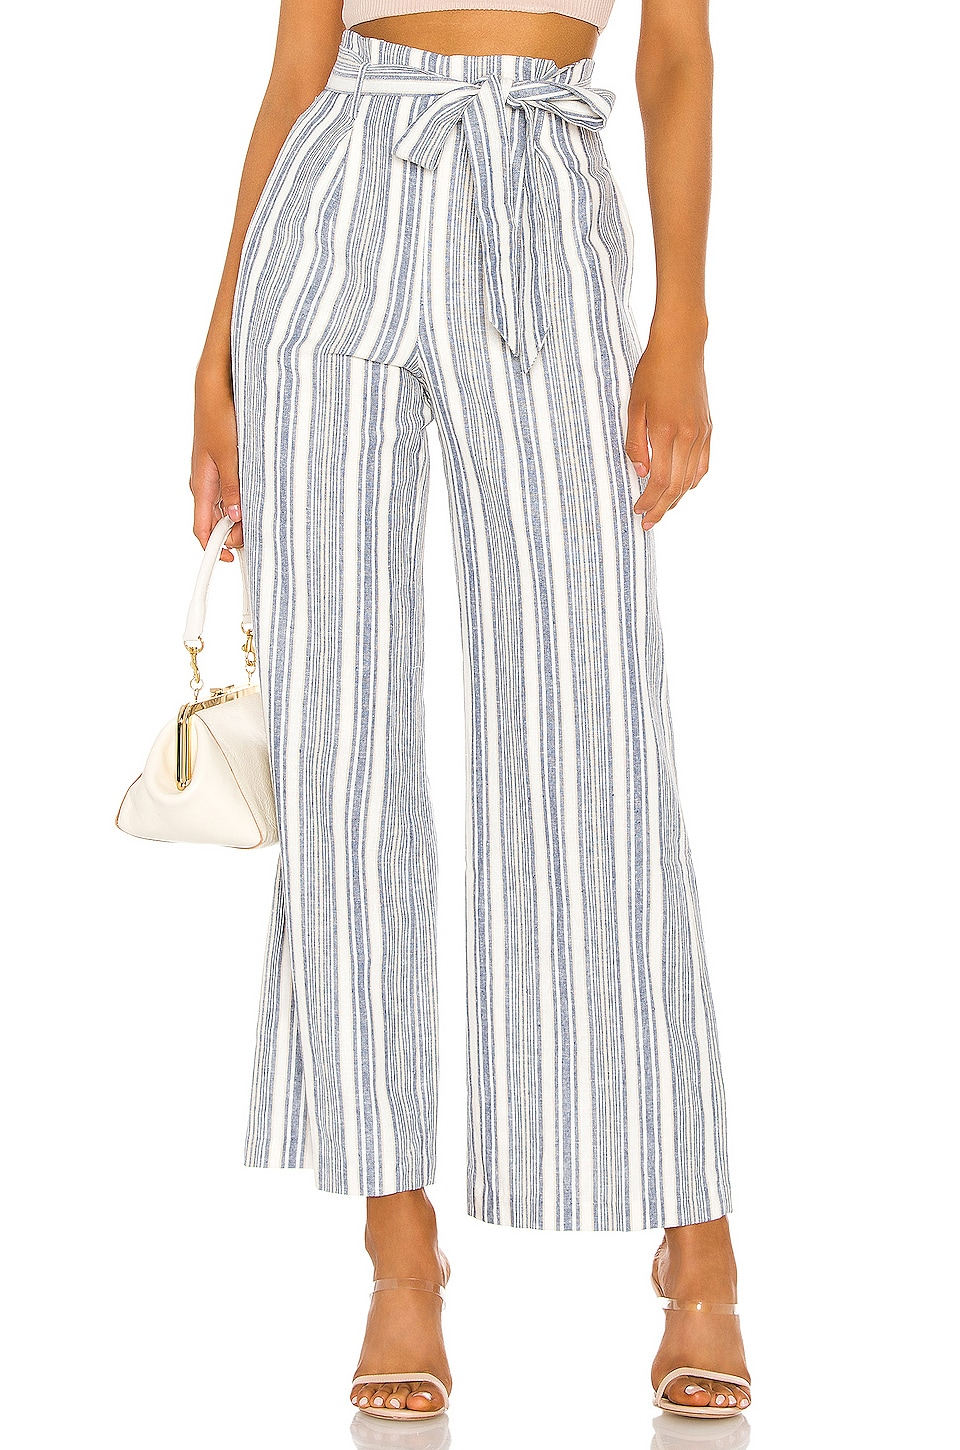 Privacy Please Jolene Pant in Blue Chambray Stripe